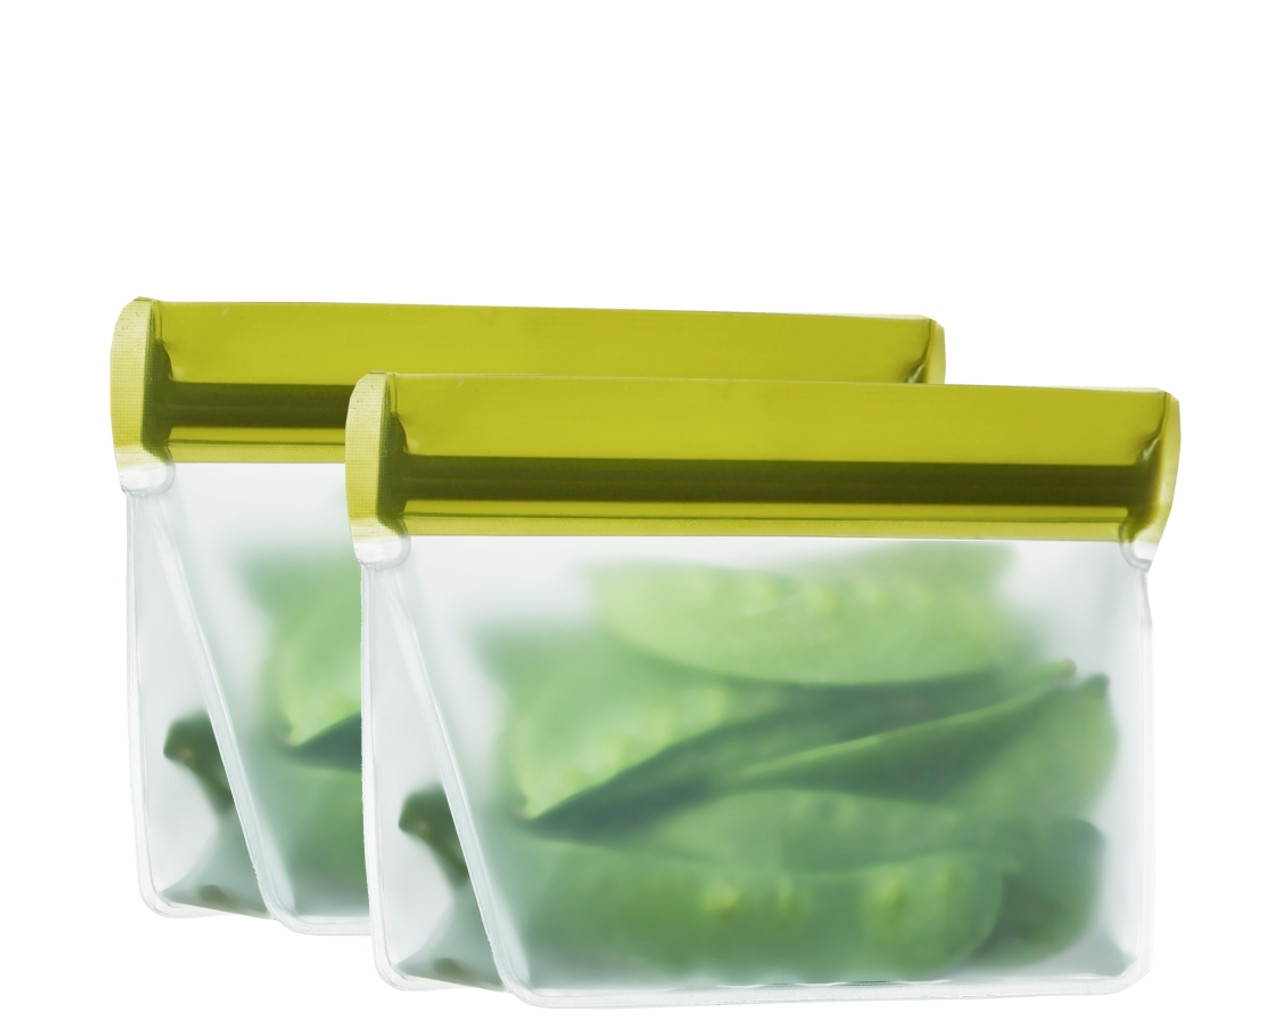 1 cup (re)zip Stand-Up Food Storage Bags (2-pack)